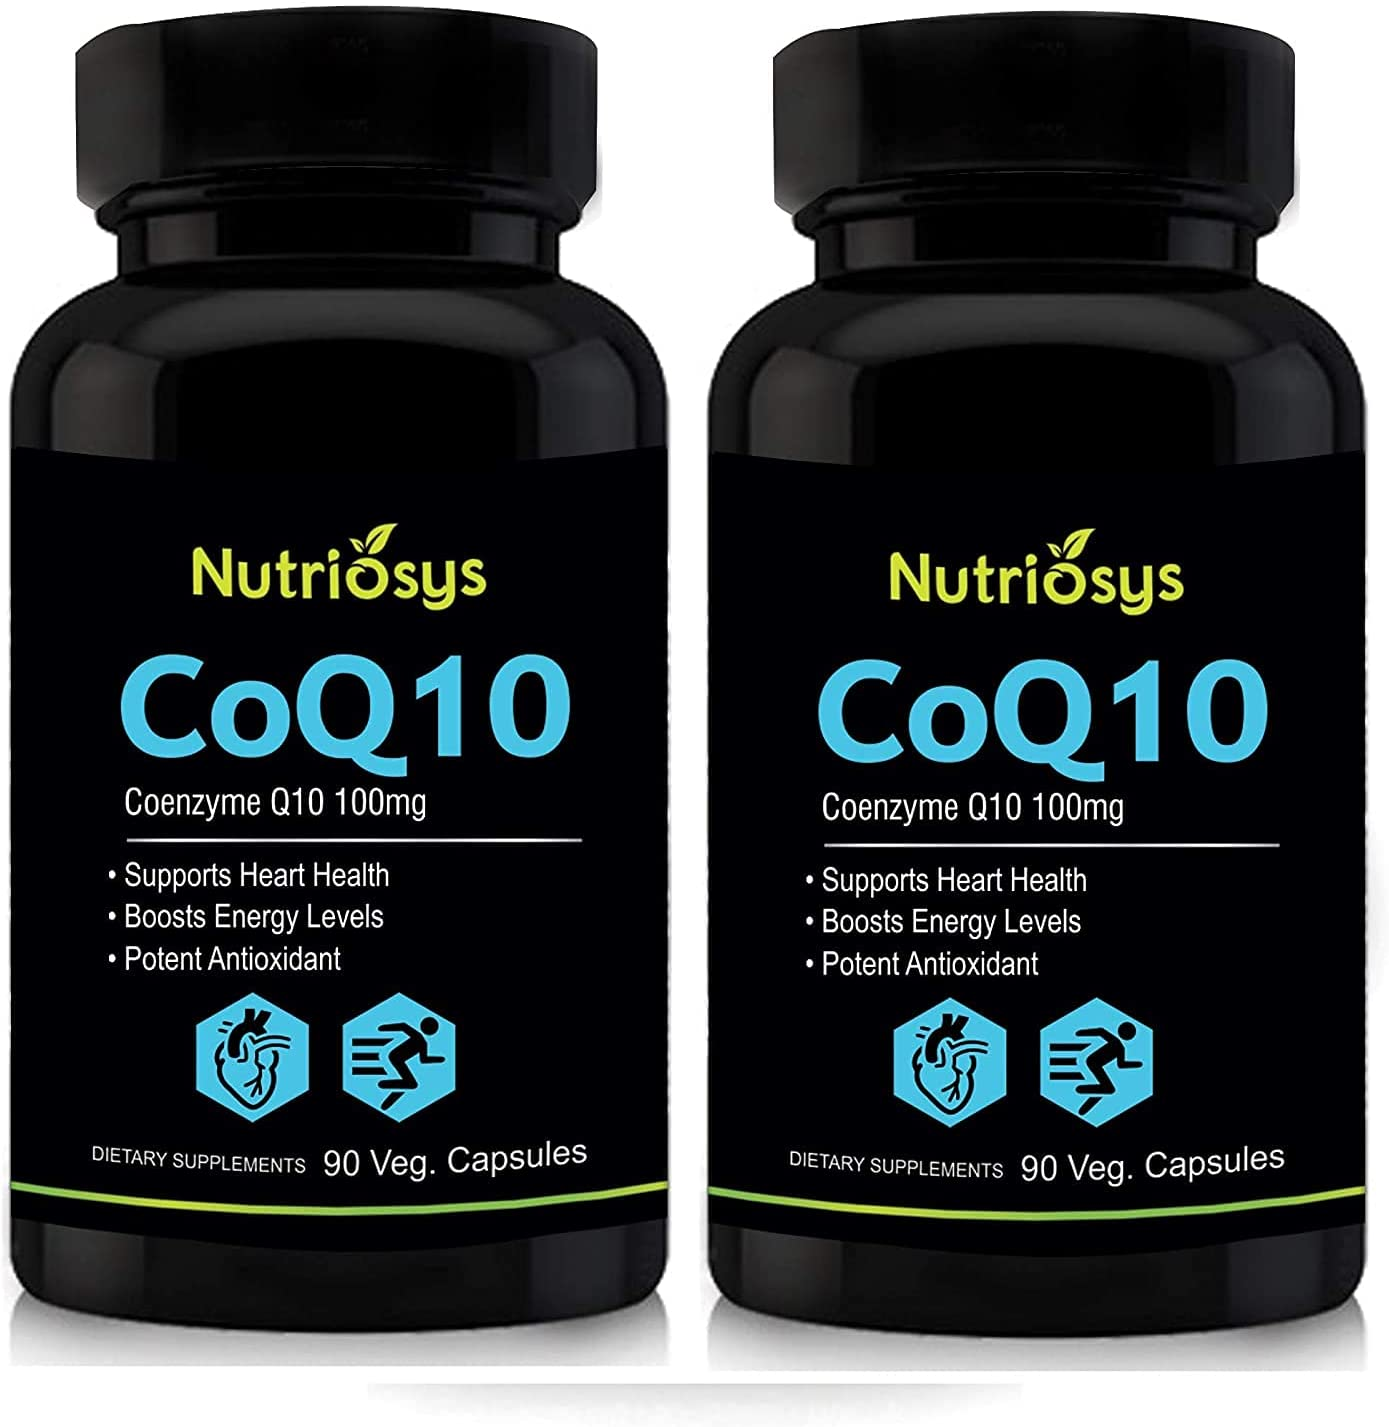 Trisha Nutriosys CoQ10 100mg 90 Veg 2 - Capsules Pack Cheap Brand Cheap Sale Venue mail order specialty store of